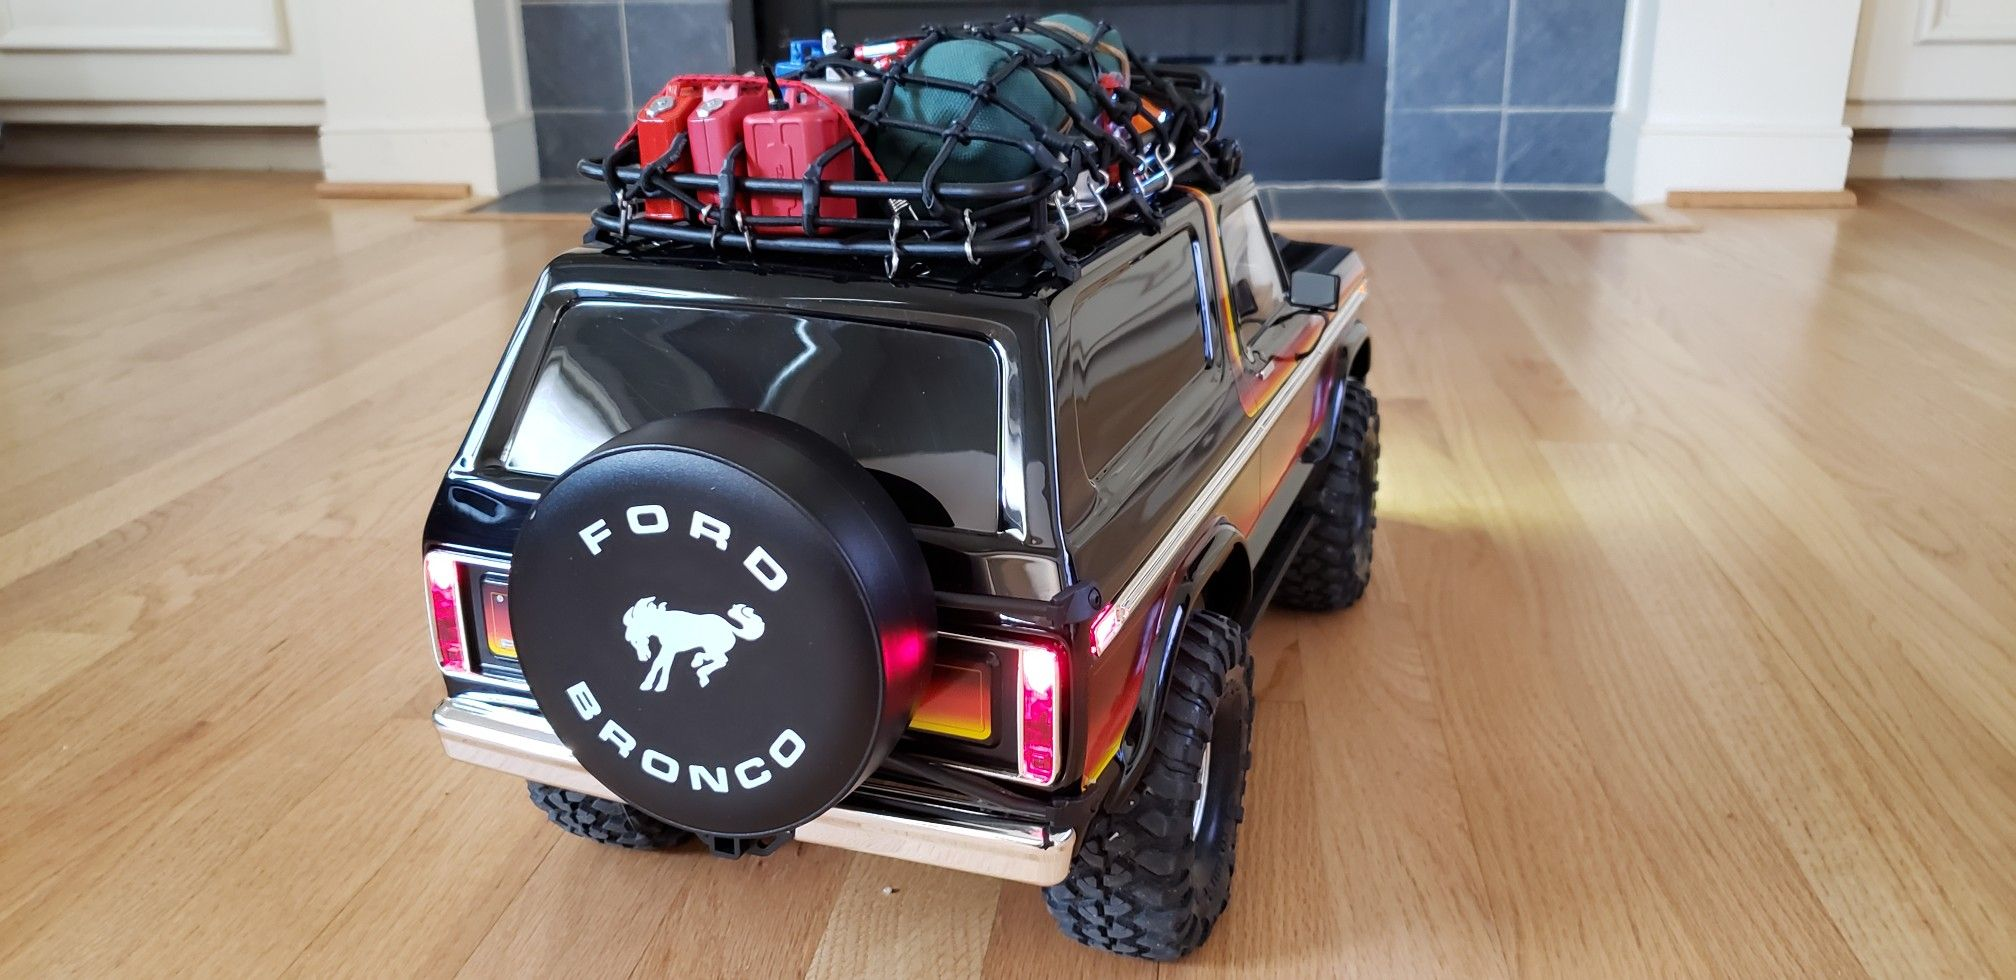 Traxxas Trx4 Ford Bronco With Roof Rack Cargo Net Roof Mount Light Bar And Many 1 10 Scale Accessories As Going Super S Traxxas Ford Bronco 1979 Ford Bronco